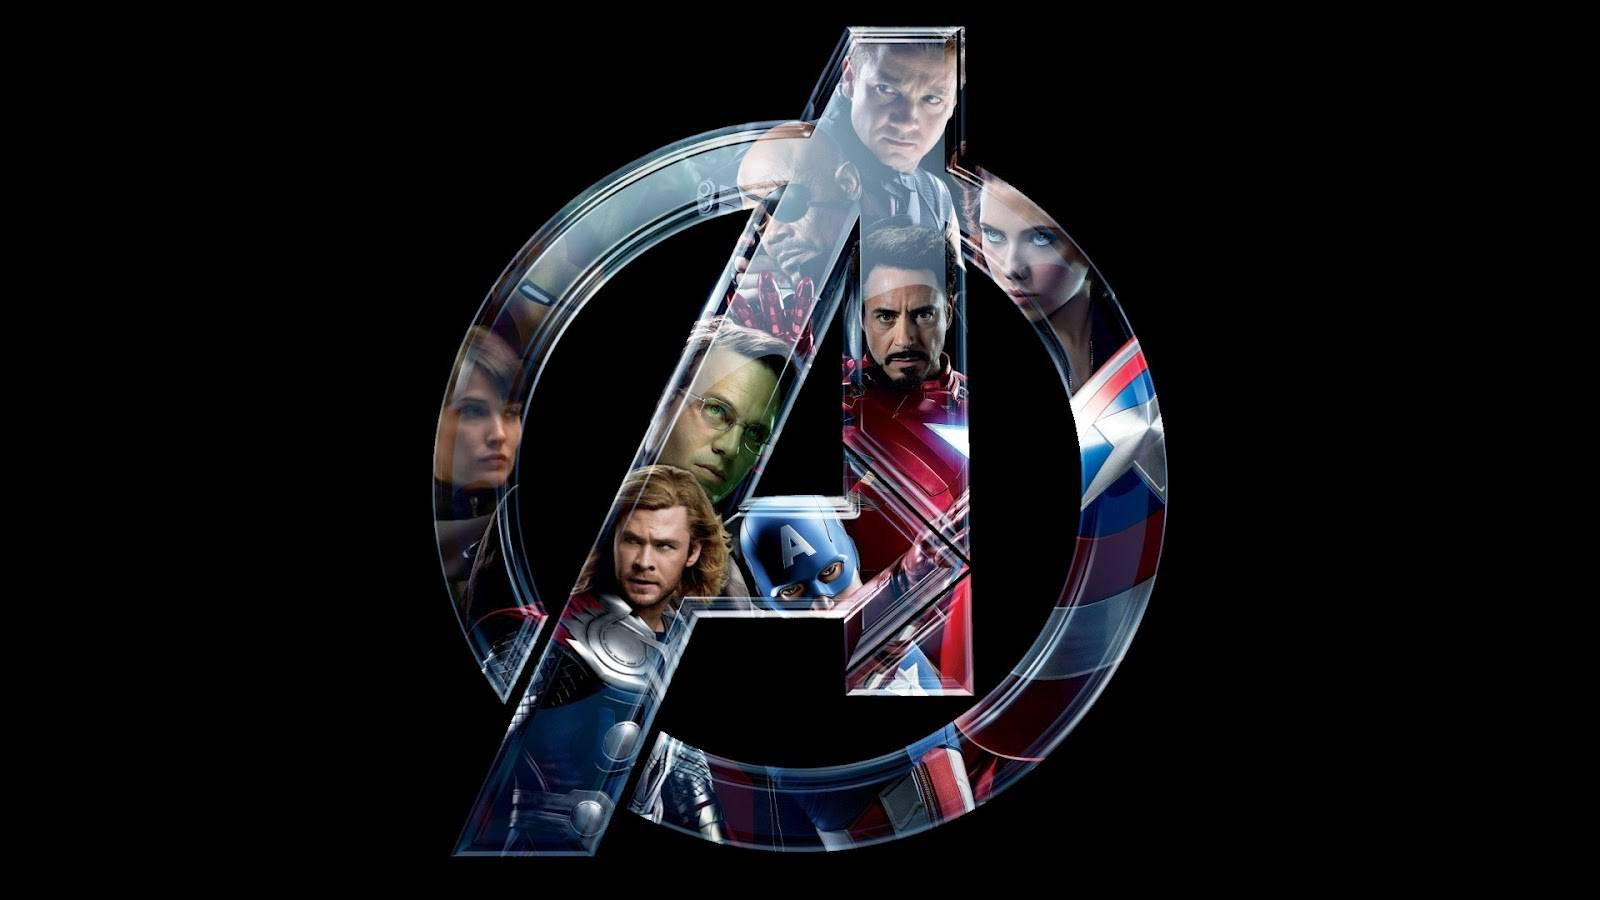 The Avengers – Black Background – Wallpapers